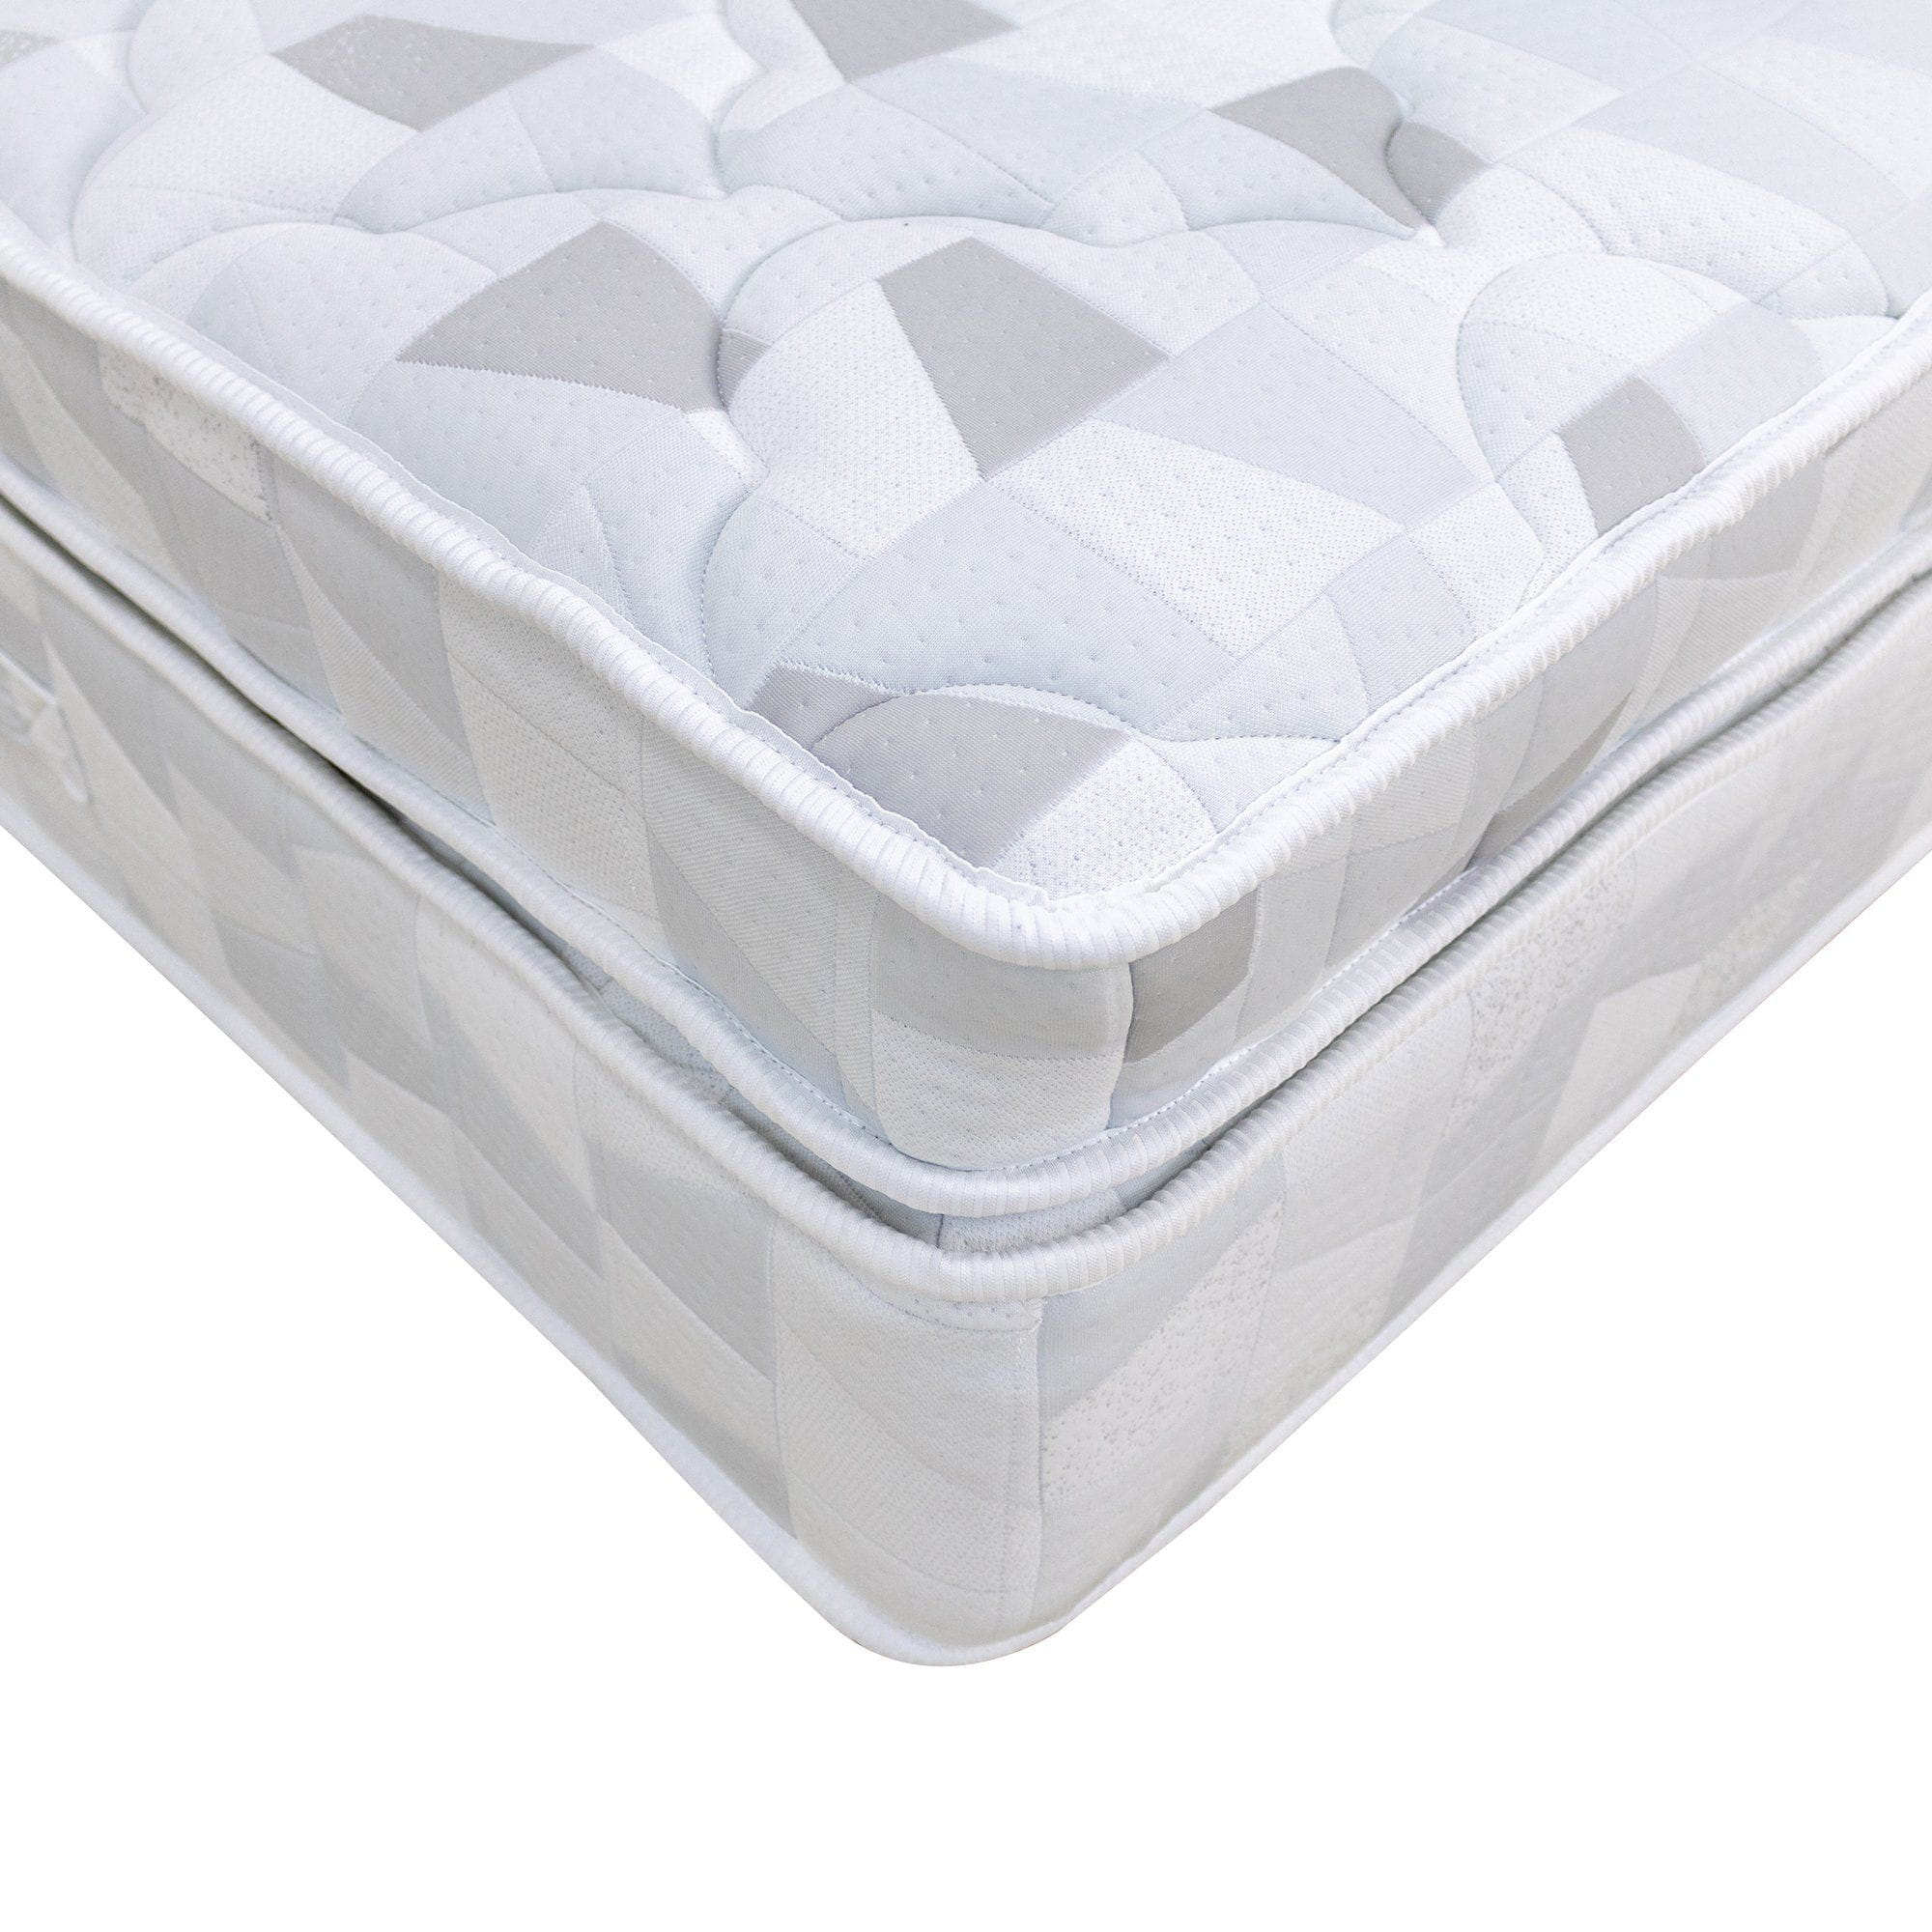 Royal Crown Gel Memory Foam Pillow Top 2000 Series